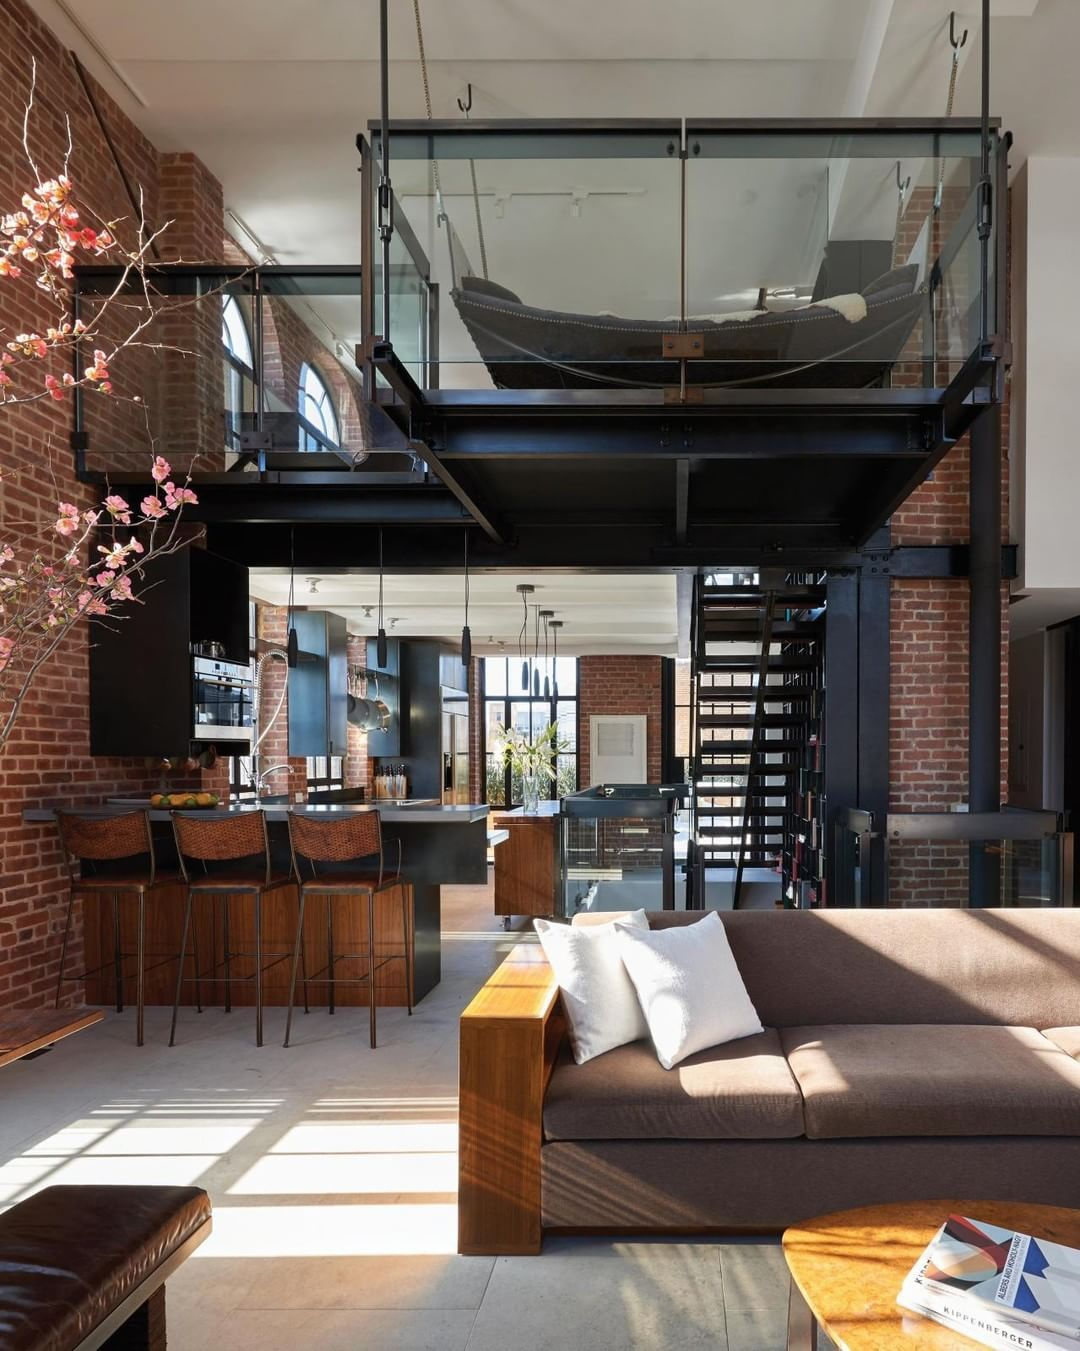 Interior Design Home: U201cPenthouse Loft Built In Converted Water Tower In  NYC. Designed By Tom Kundig U201d